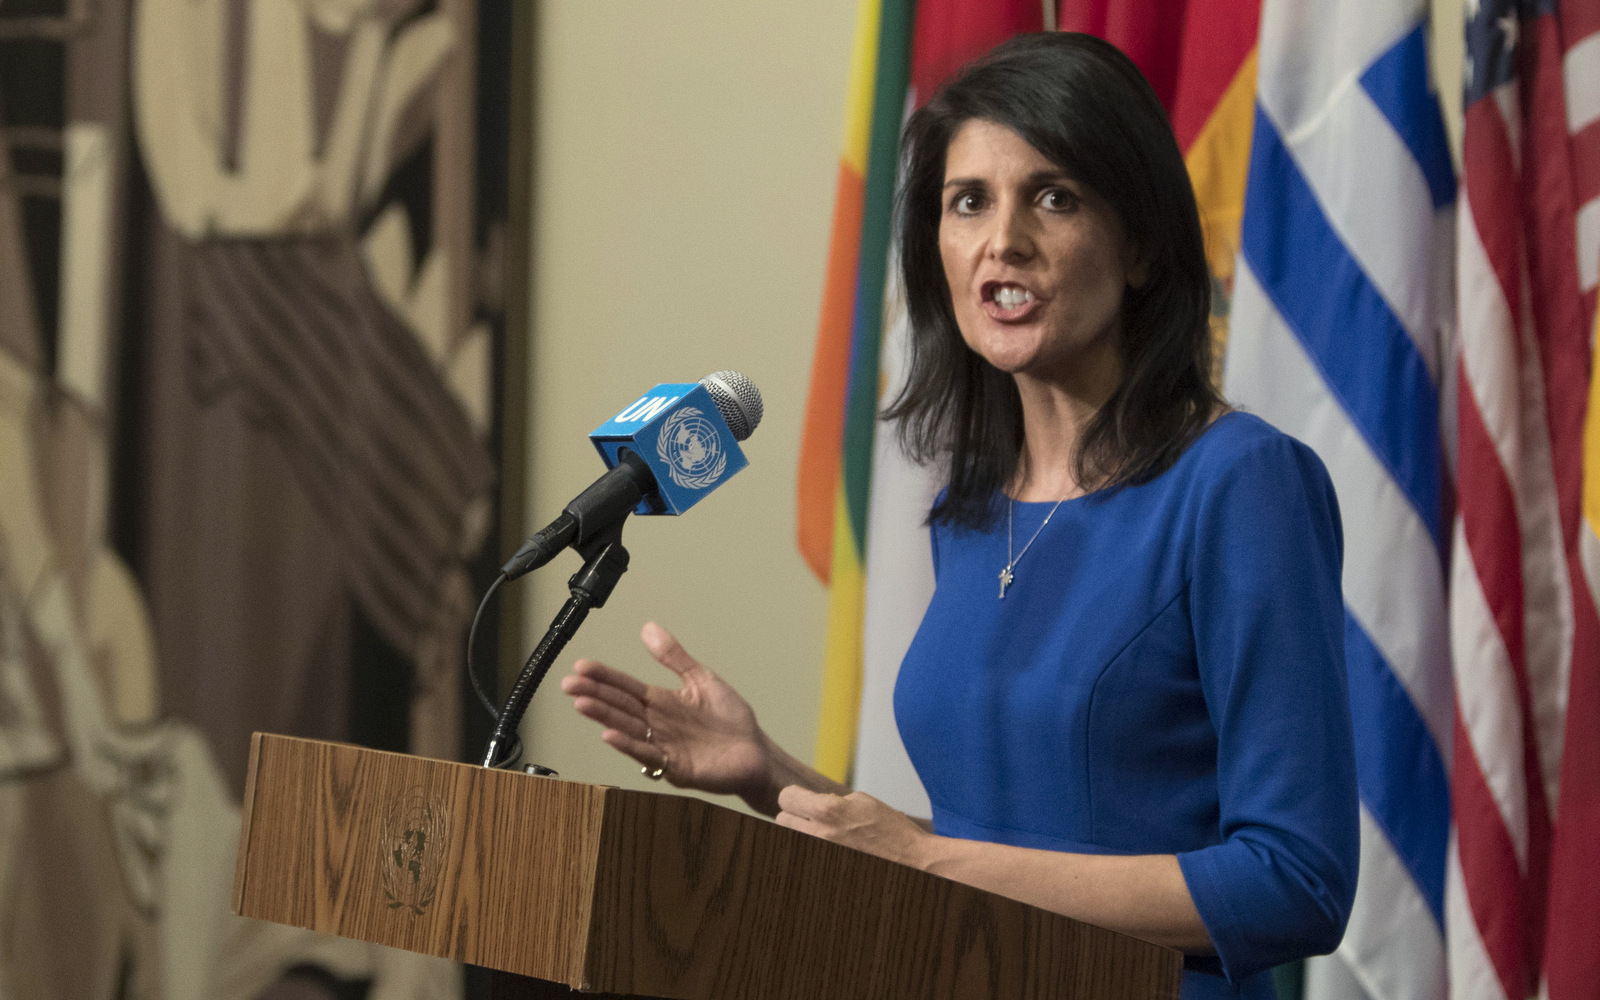 United States Ambassador to the United Nations Nikki Haley speaks to reporters after a Security Council meeting on the situation in the Middle East, Thursday, Feb. 16, 2017 at U.N. headquarters. (AP/Mary Altaffer)